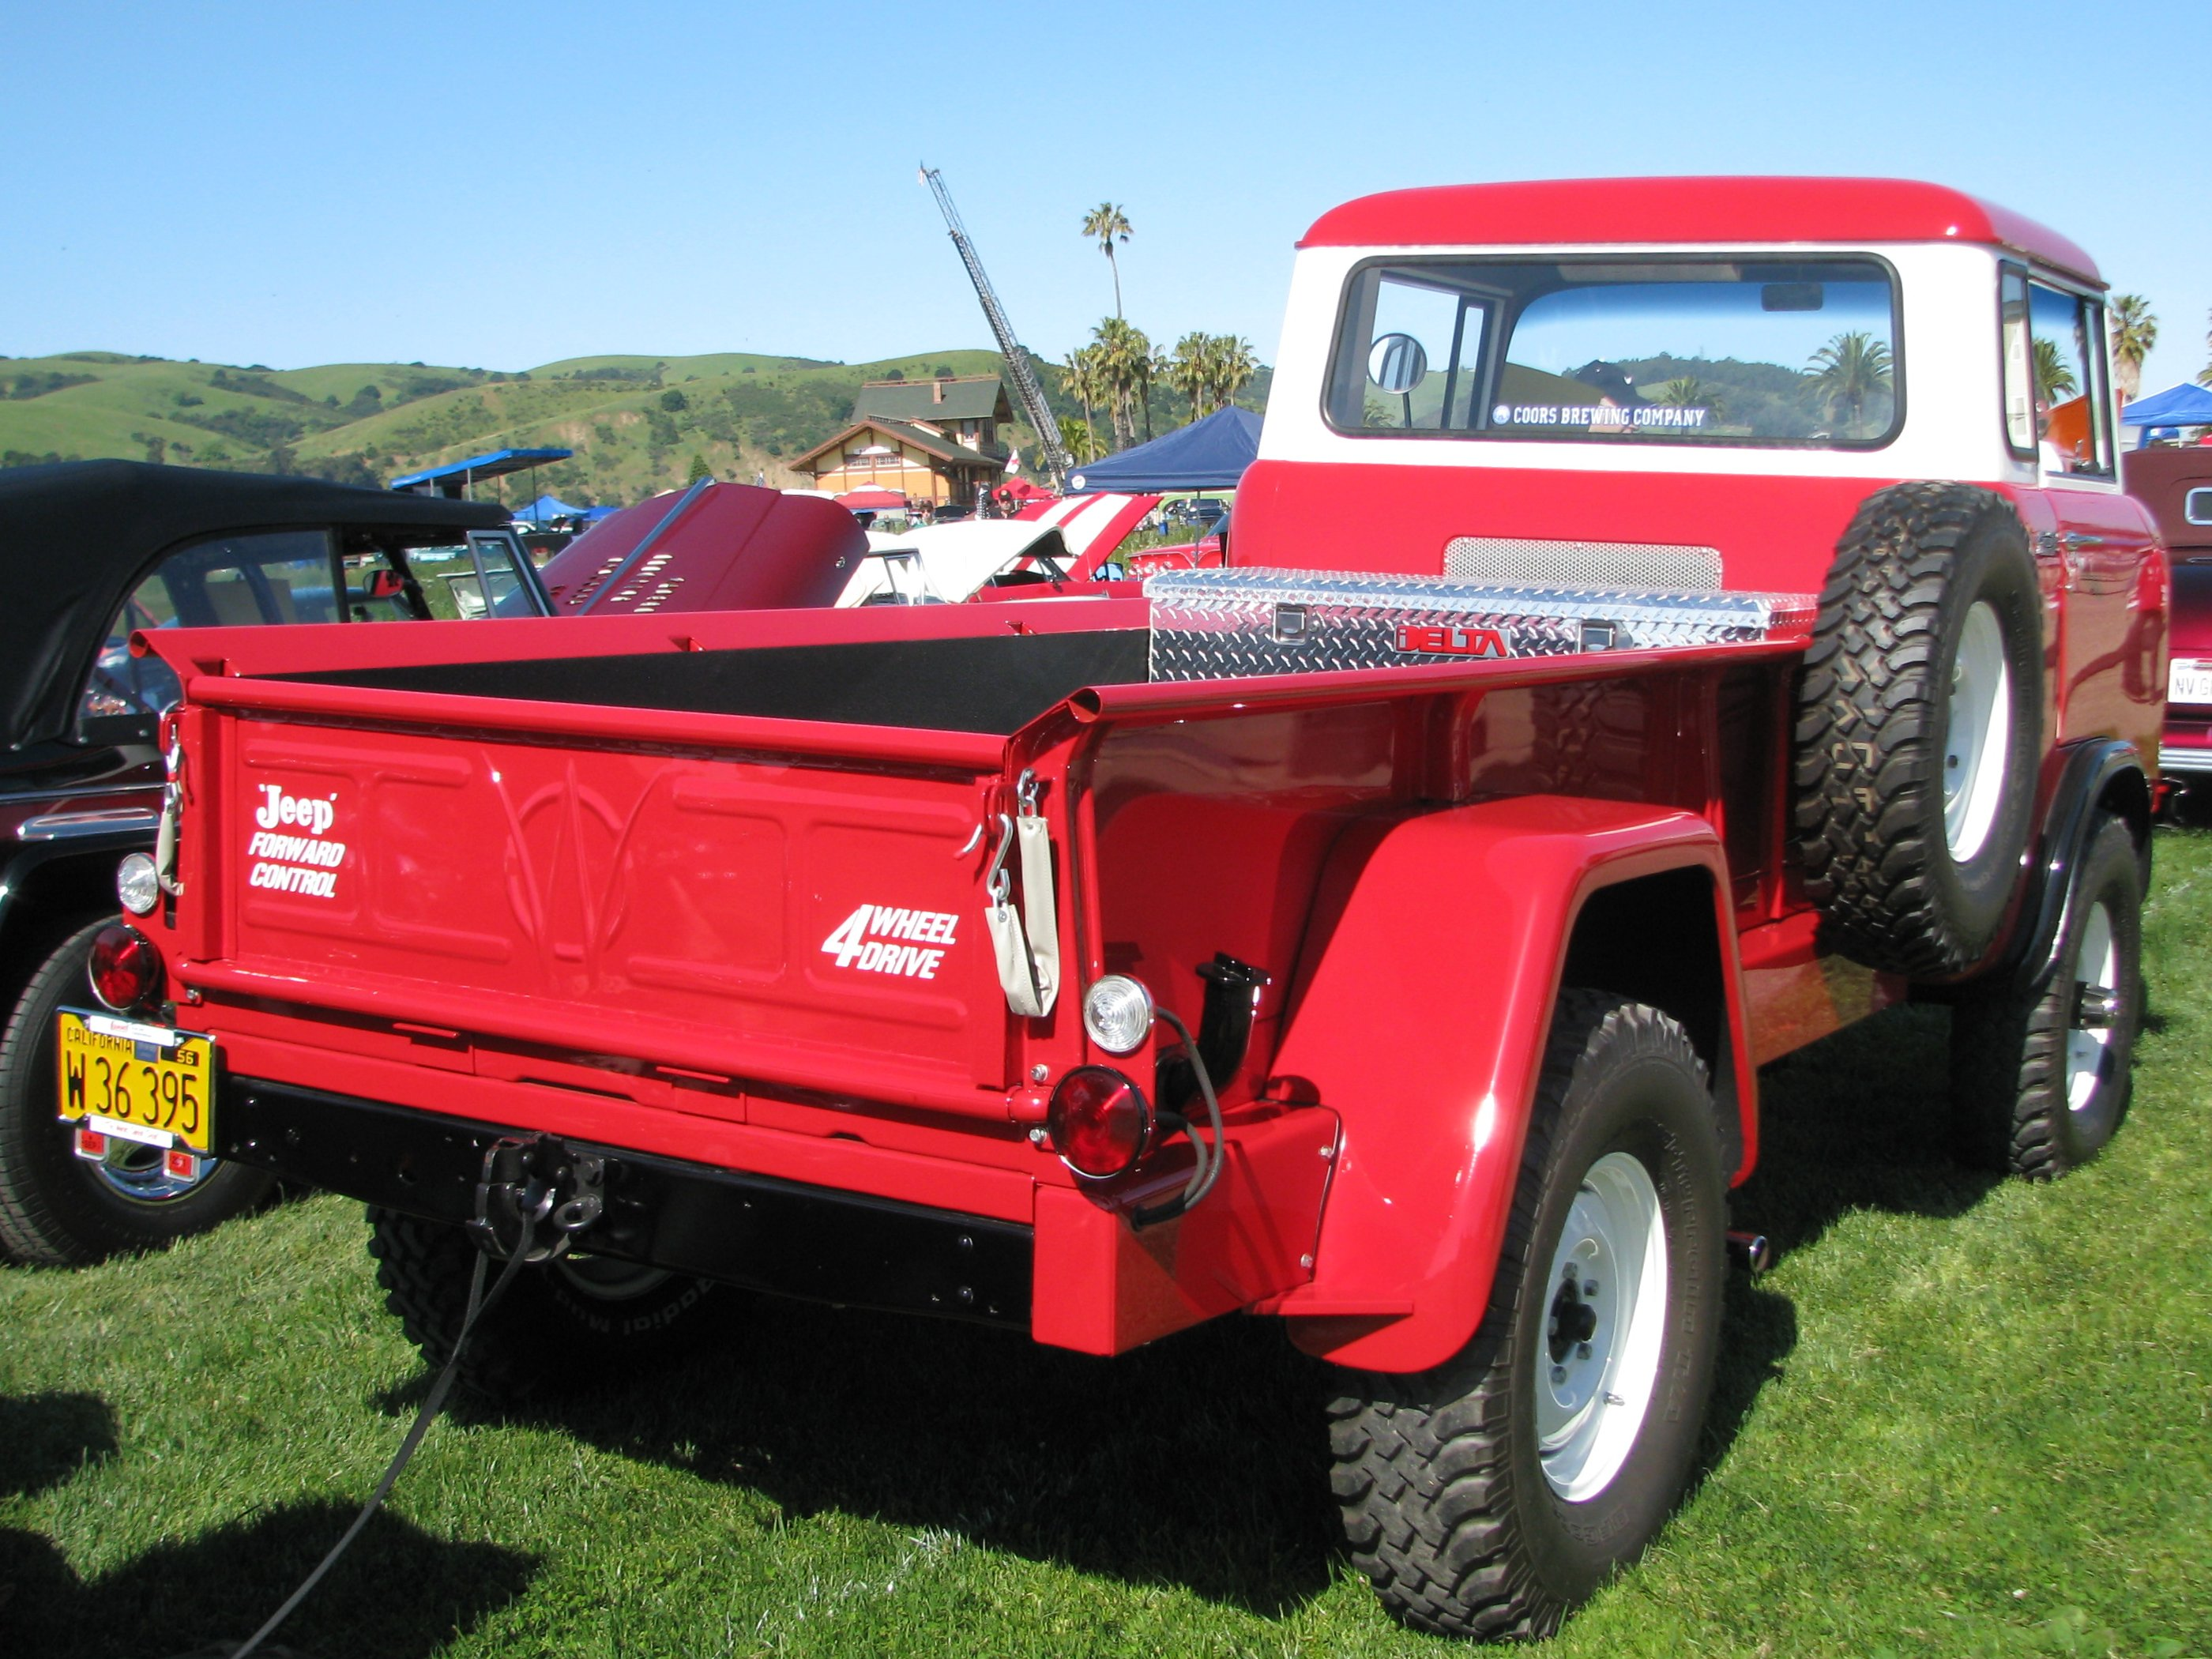 1960 Willys Jeep FC 170 C.O.E. Truck 'W 36 395' 3 | Flickr - Photo ...